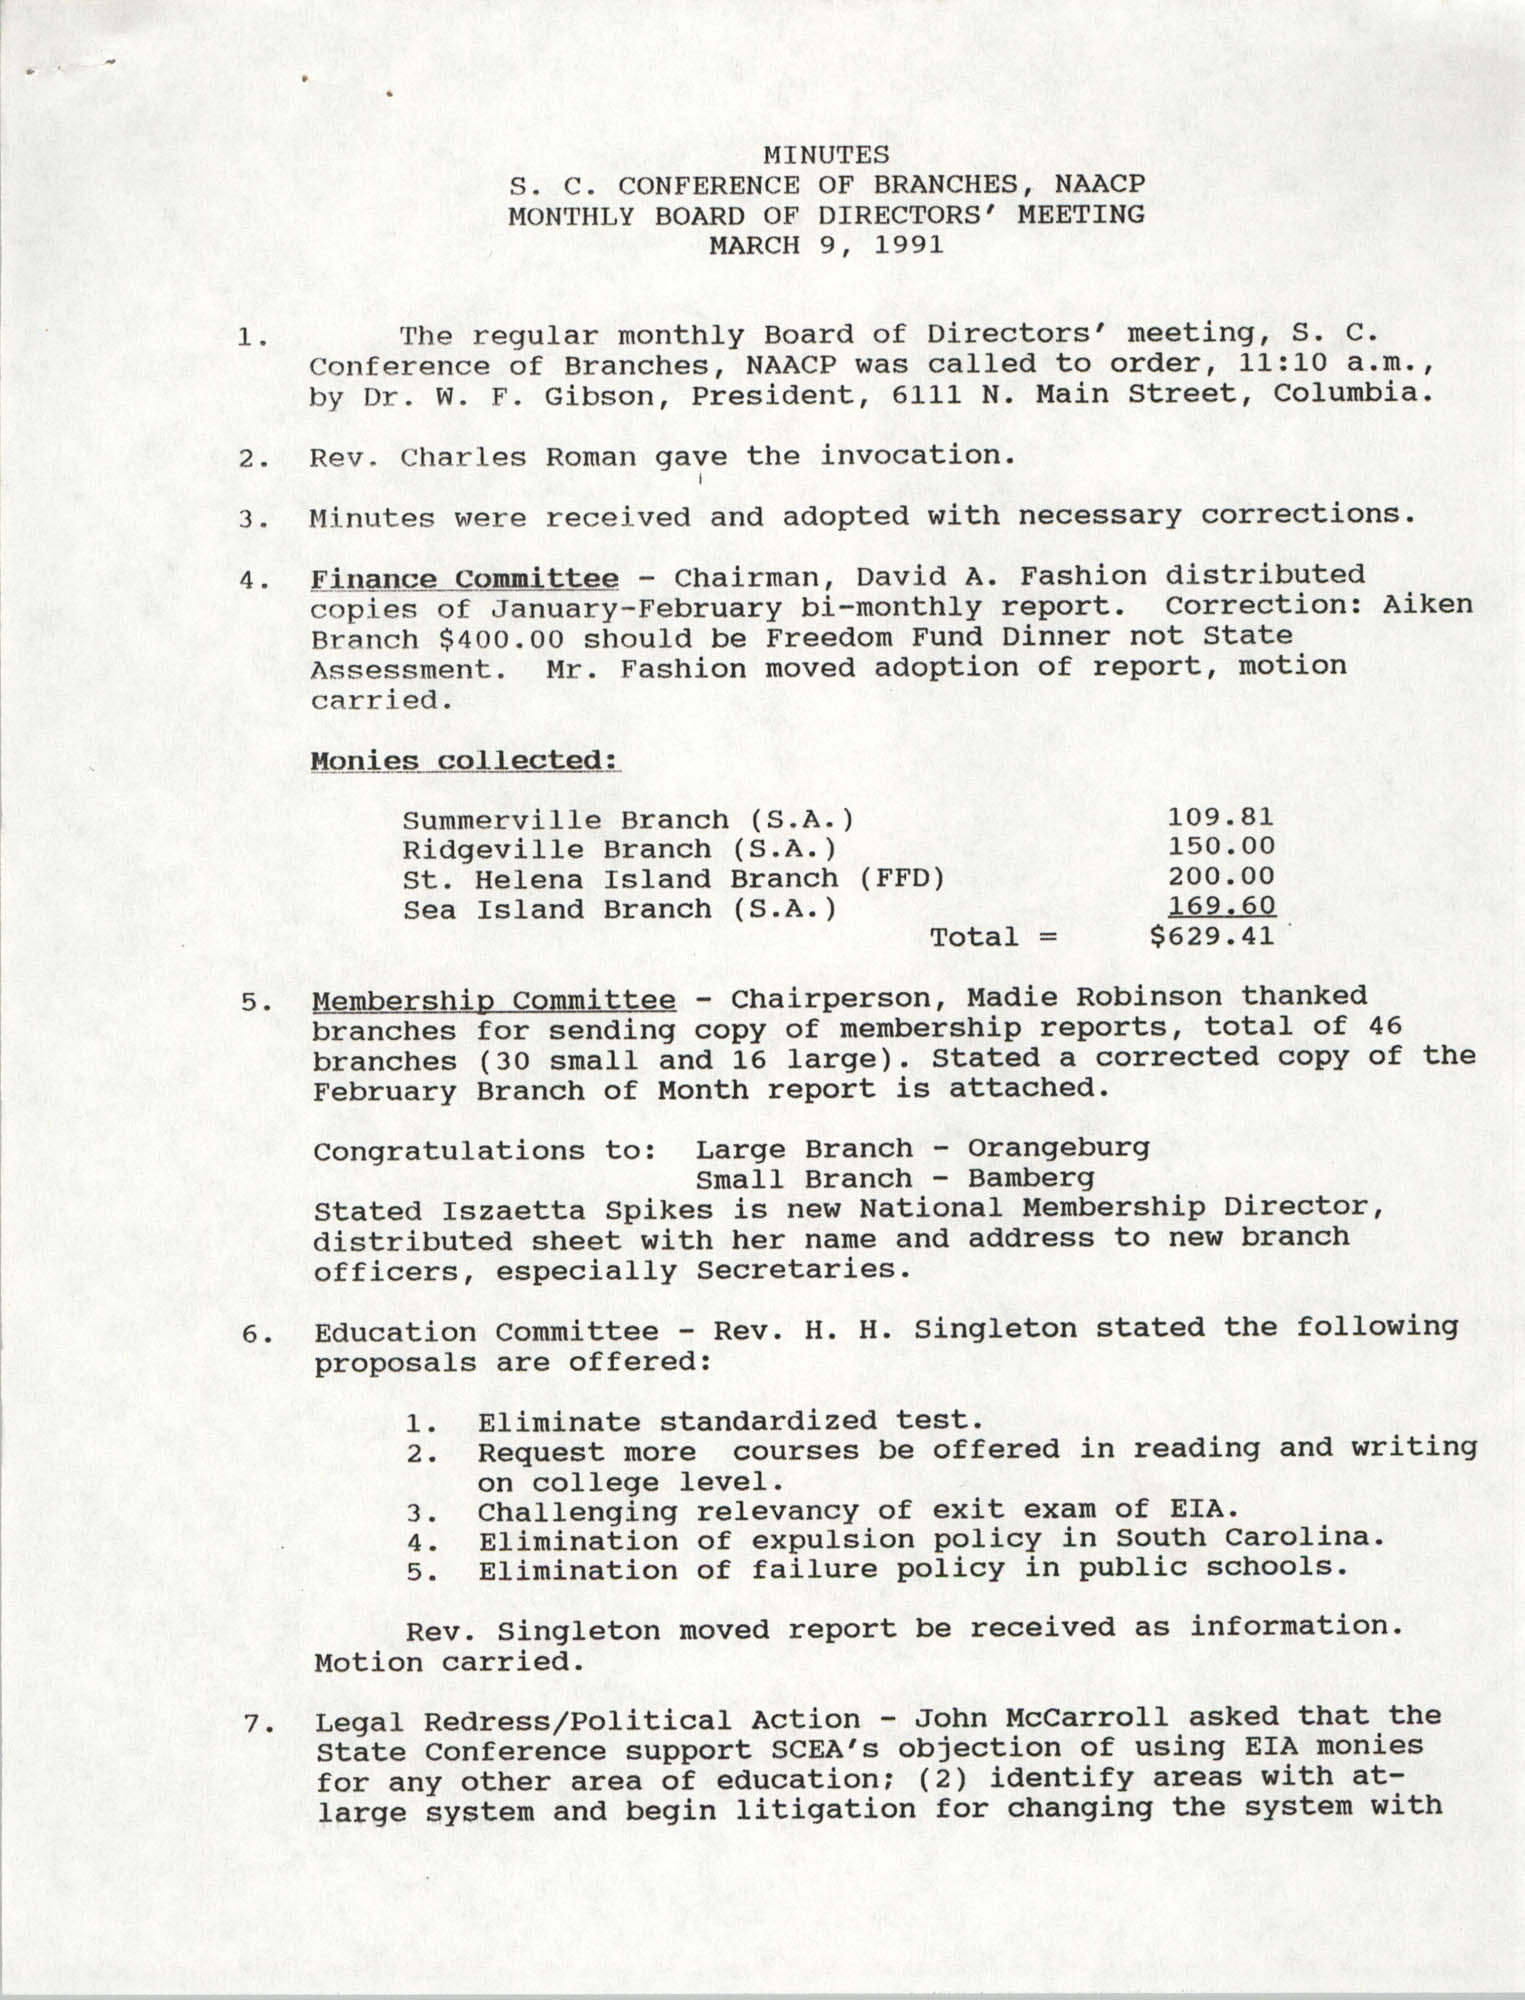 Minutes, South Carolina Conference of Branches of the NAACP, March 9, 1991